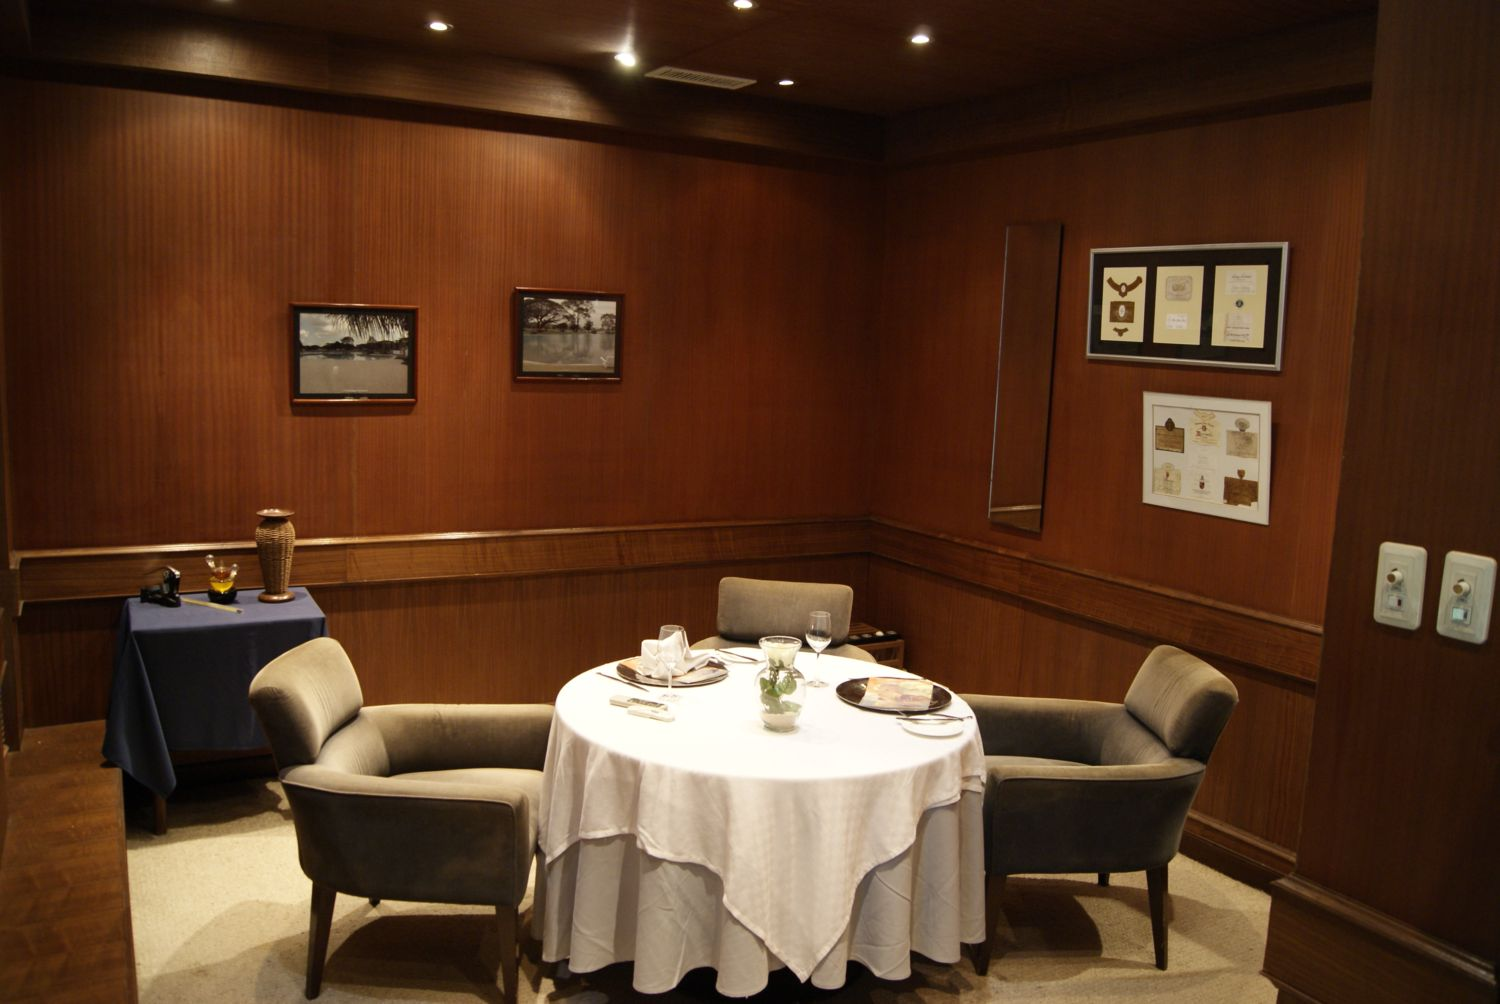 Private dining room restaurant